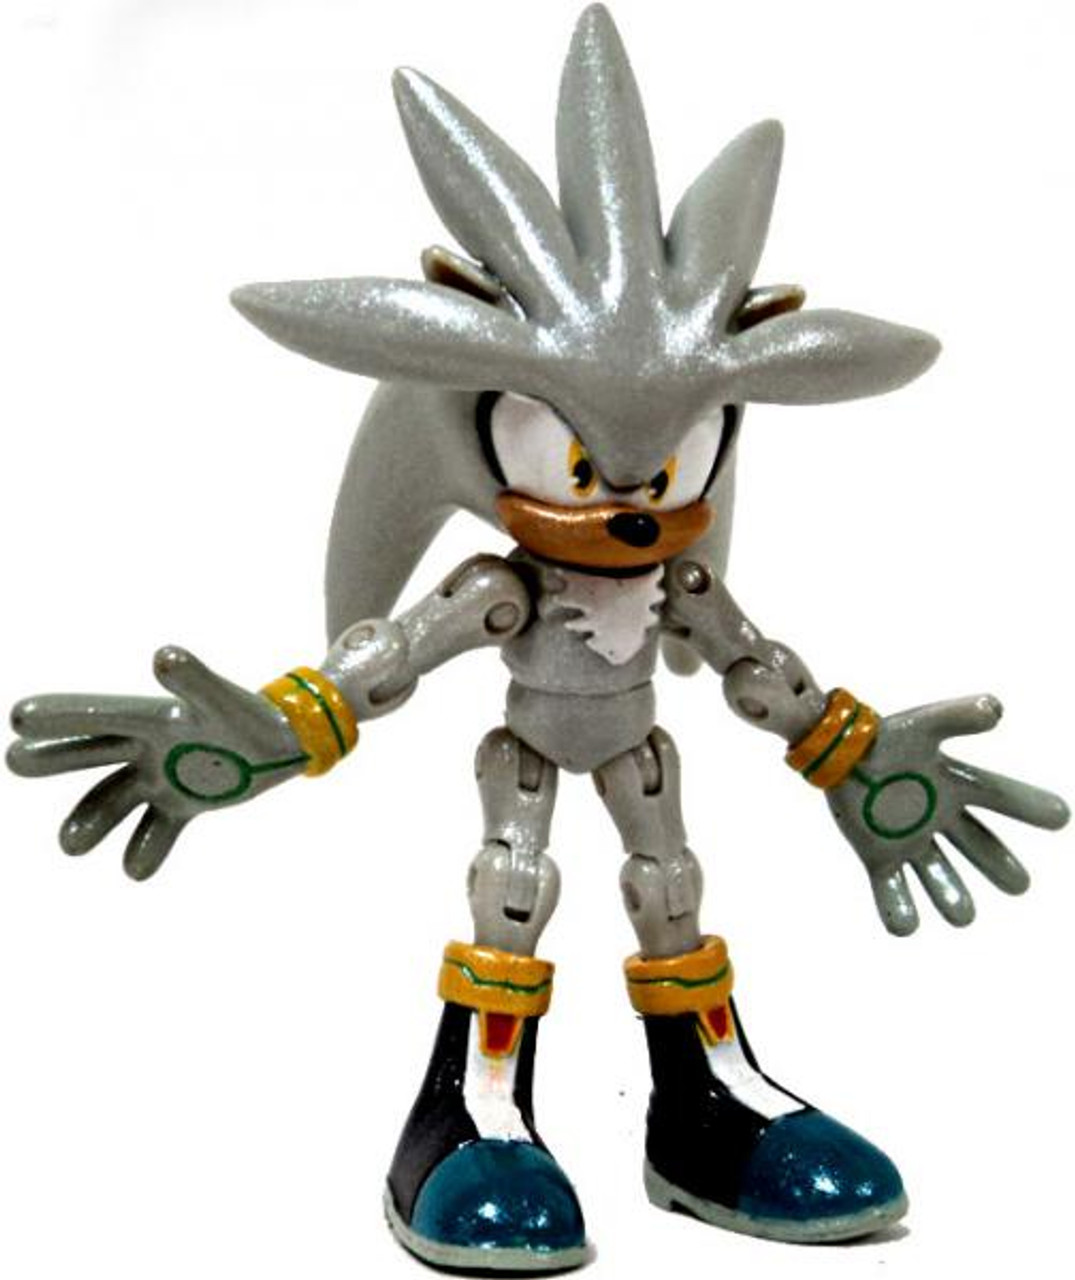 Sonic The Hedgehog 20th Anniversary Silver Exclusive Action Figure [Shiny Metallic Loose]